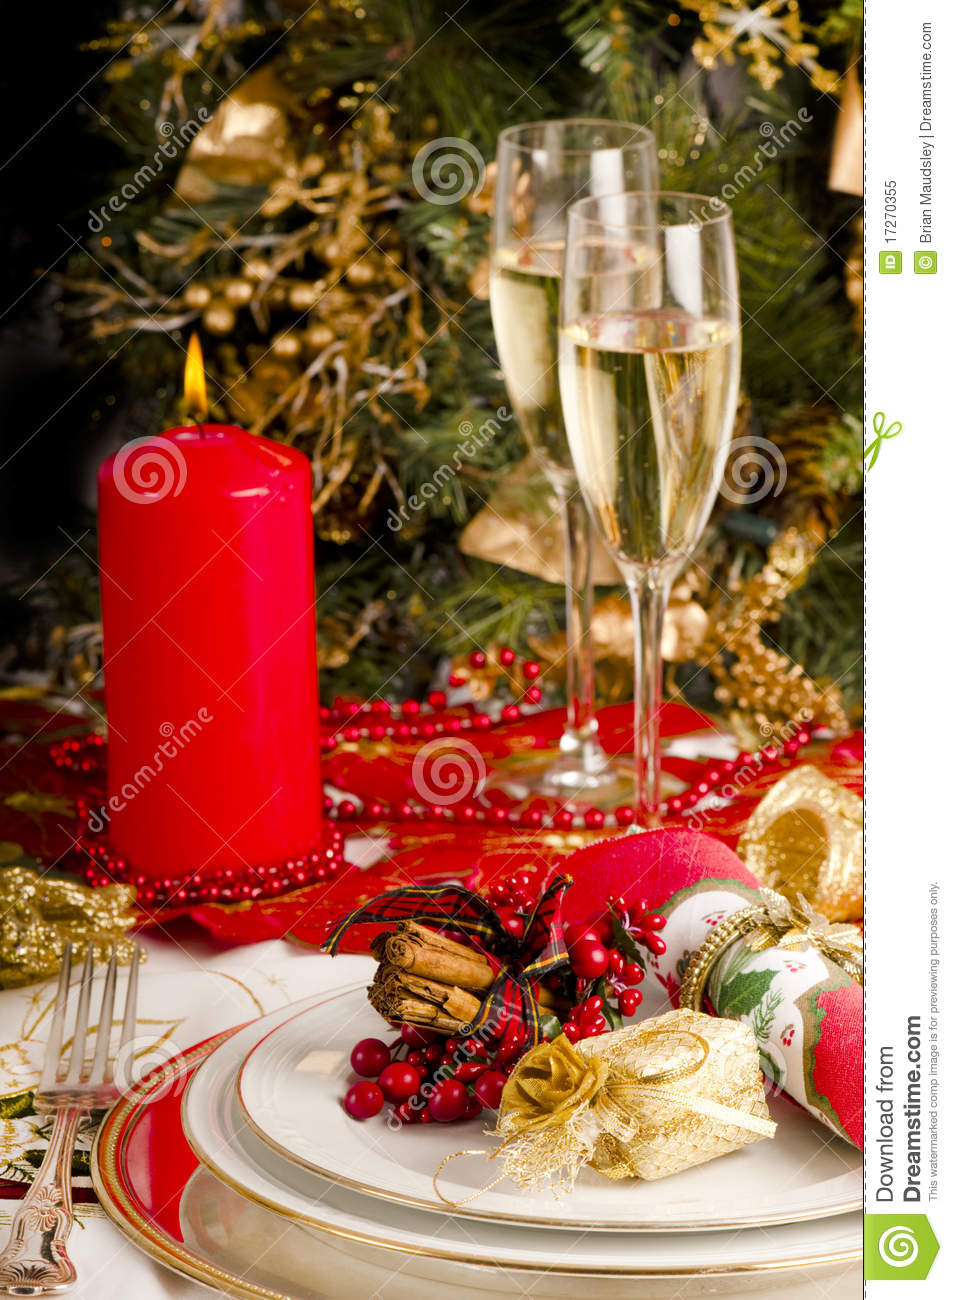 Table Setting For Christmas Meal Stock Image Image